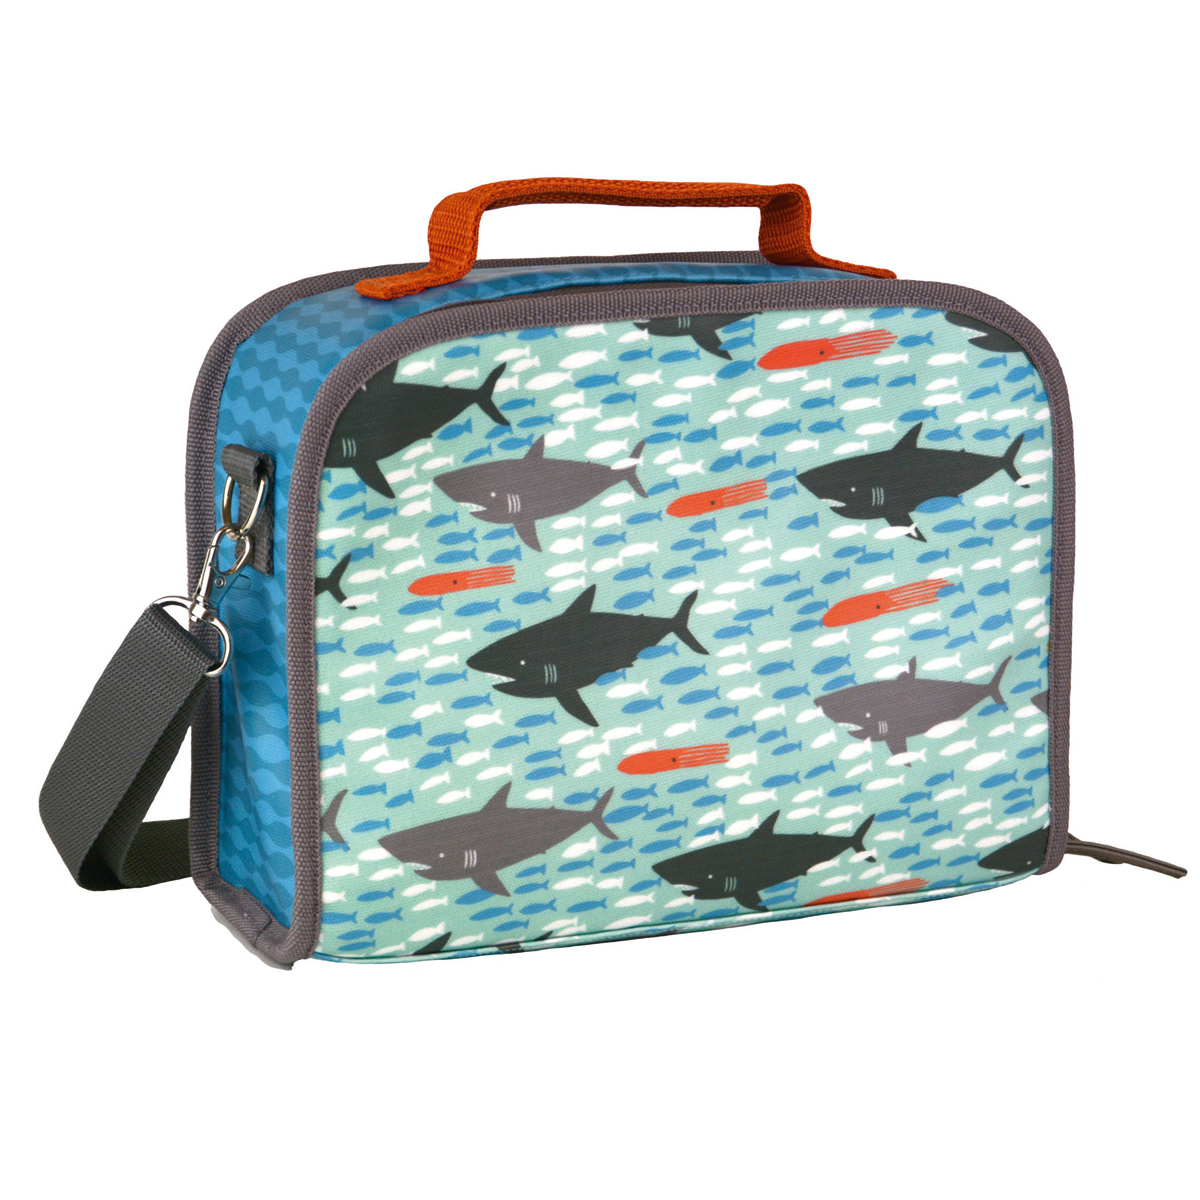 Sac isotherme Lunch bag Requins Lunch bag Requins